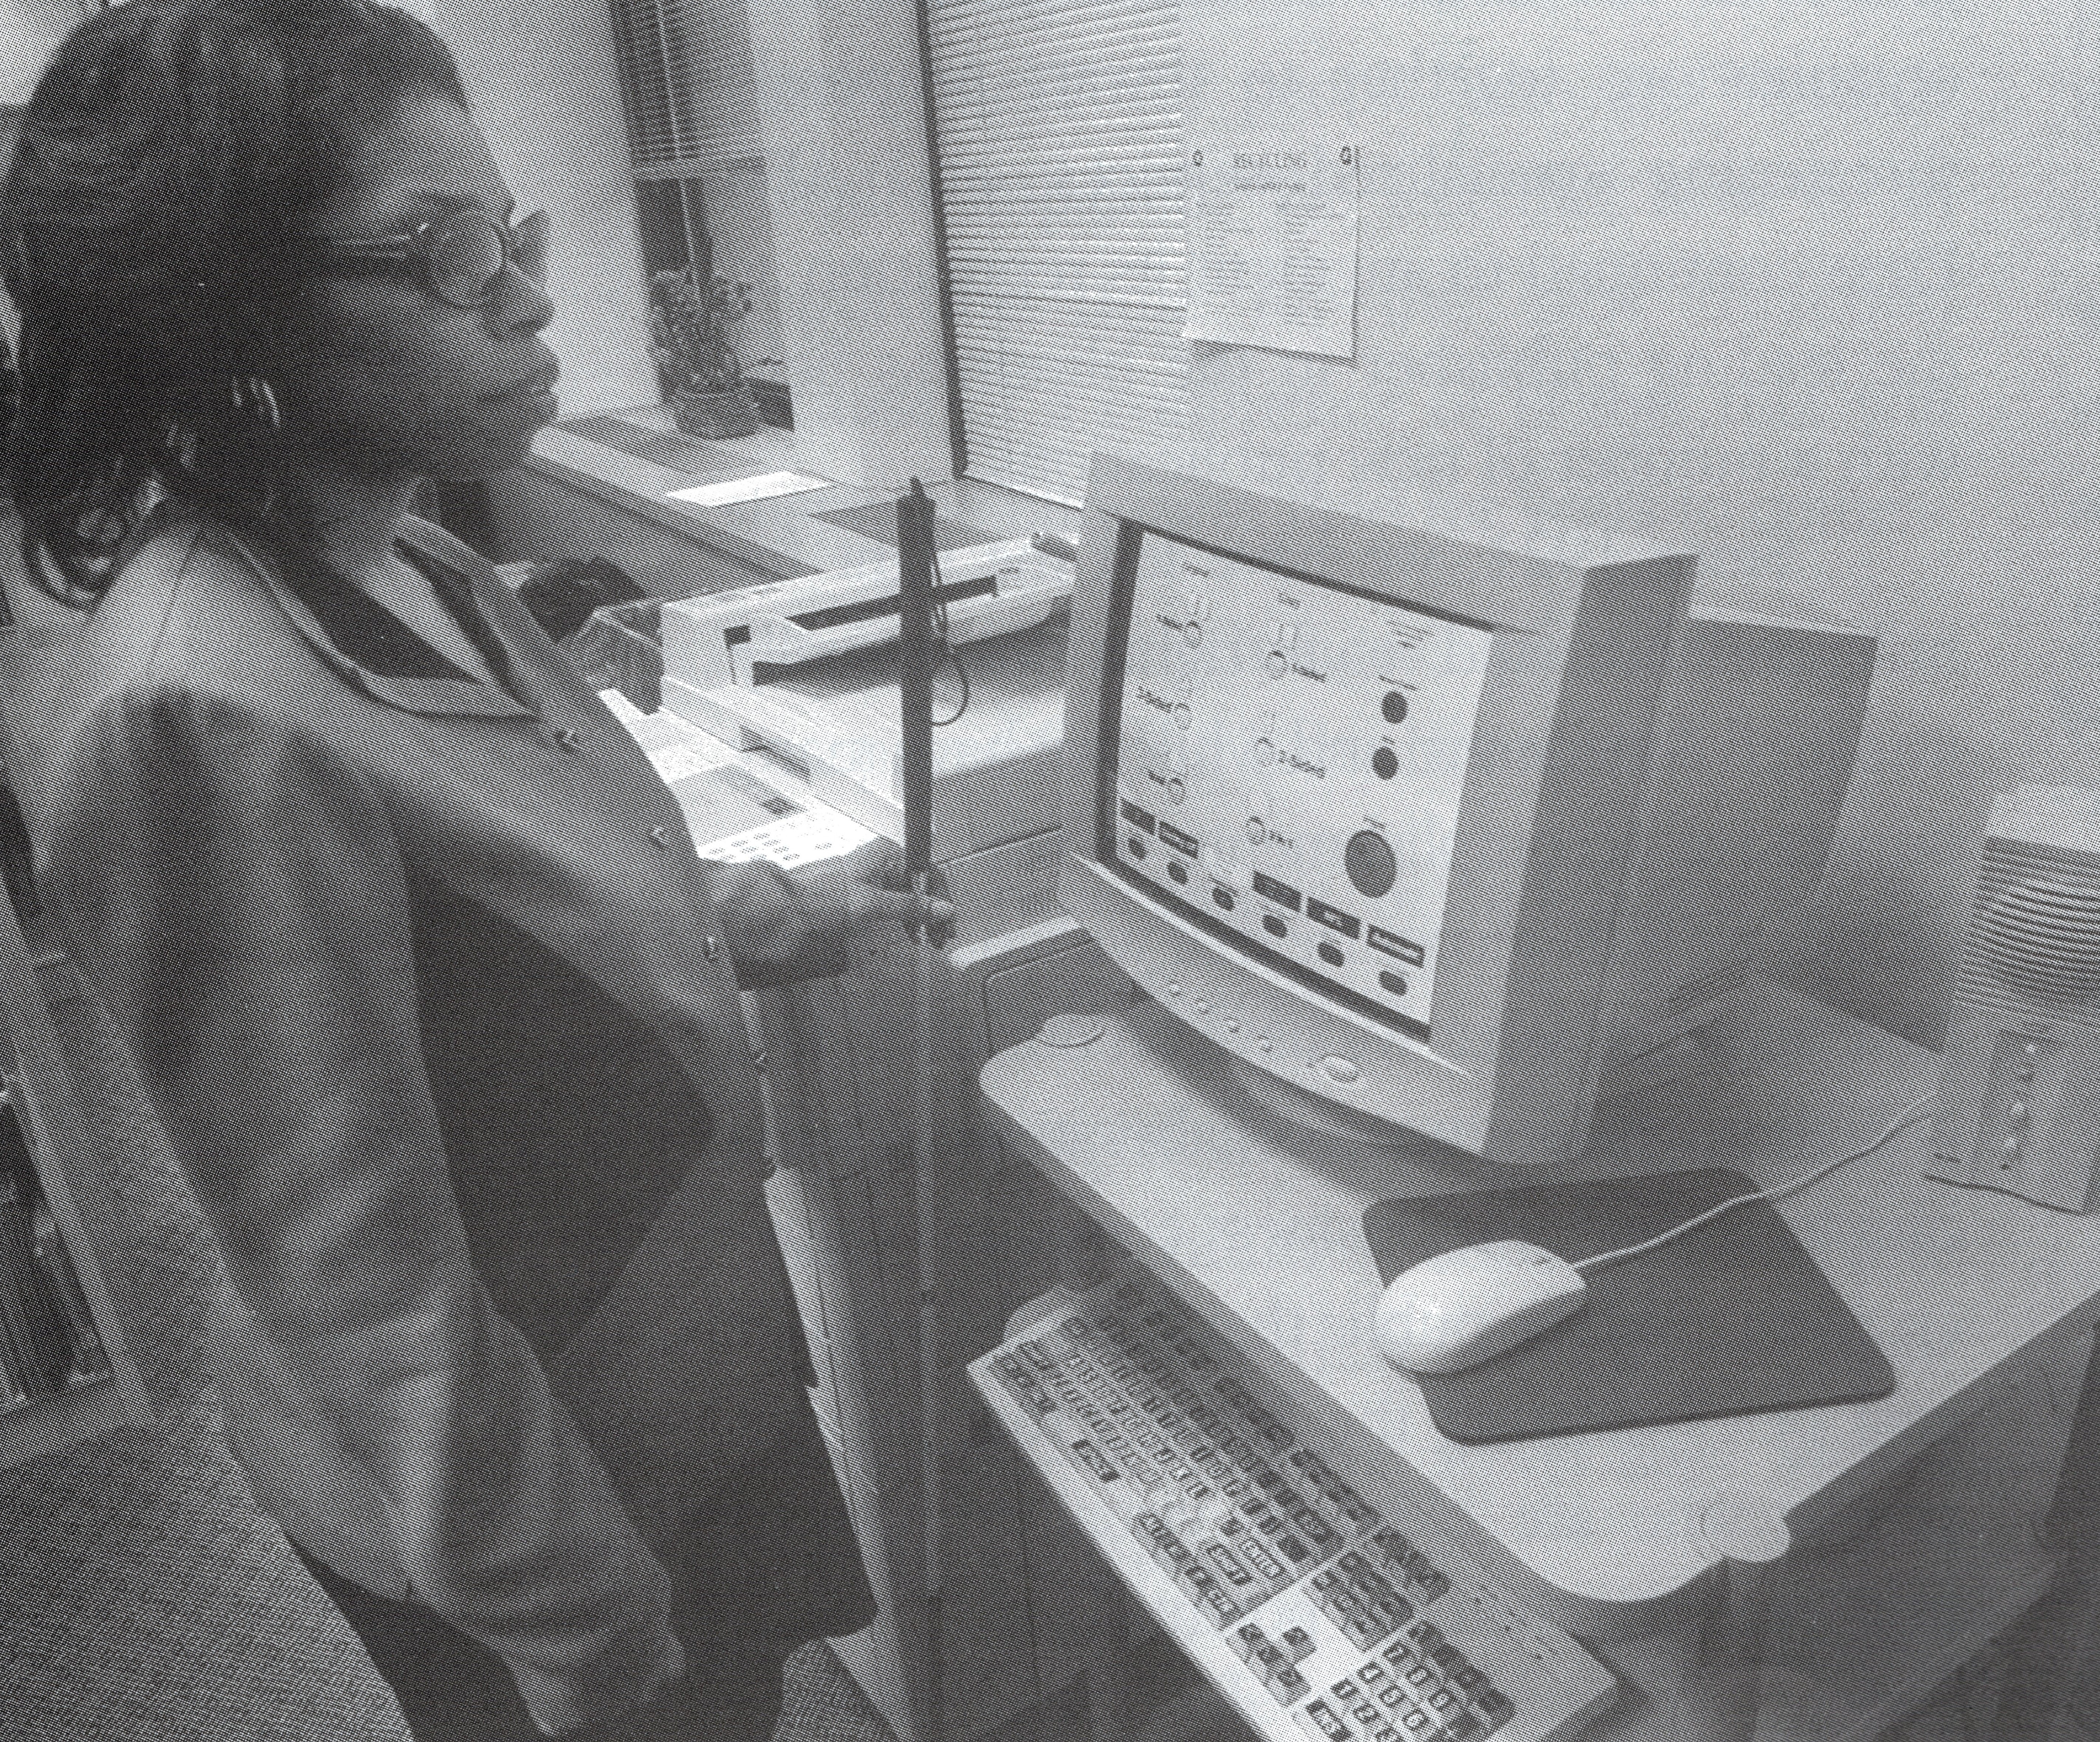 A Black woman wearing dark glasses and holding a cane stands in front of a computer on a desk. Next to her is a copy machine. The computer monitor displays copier settings.